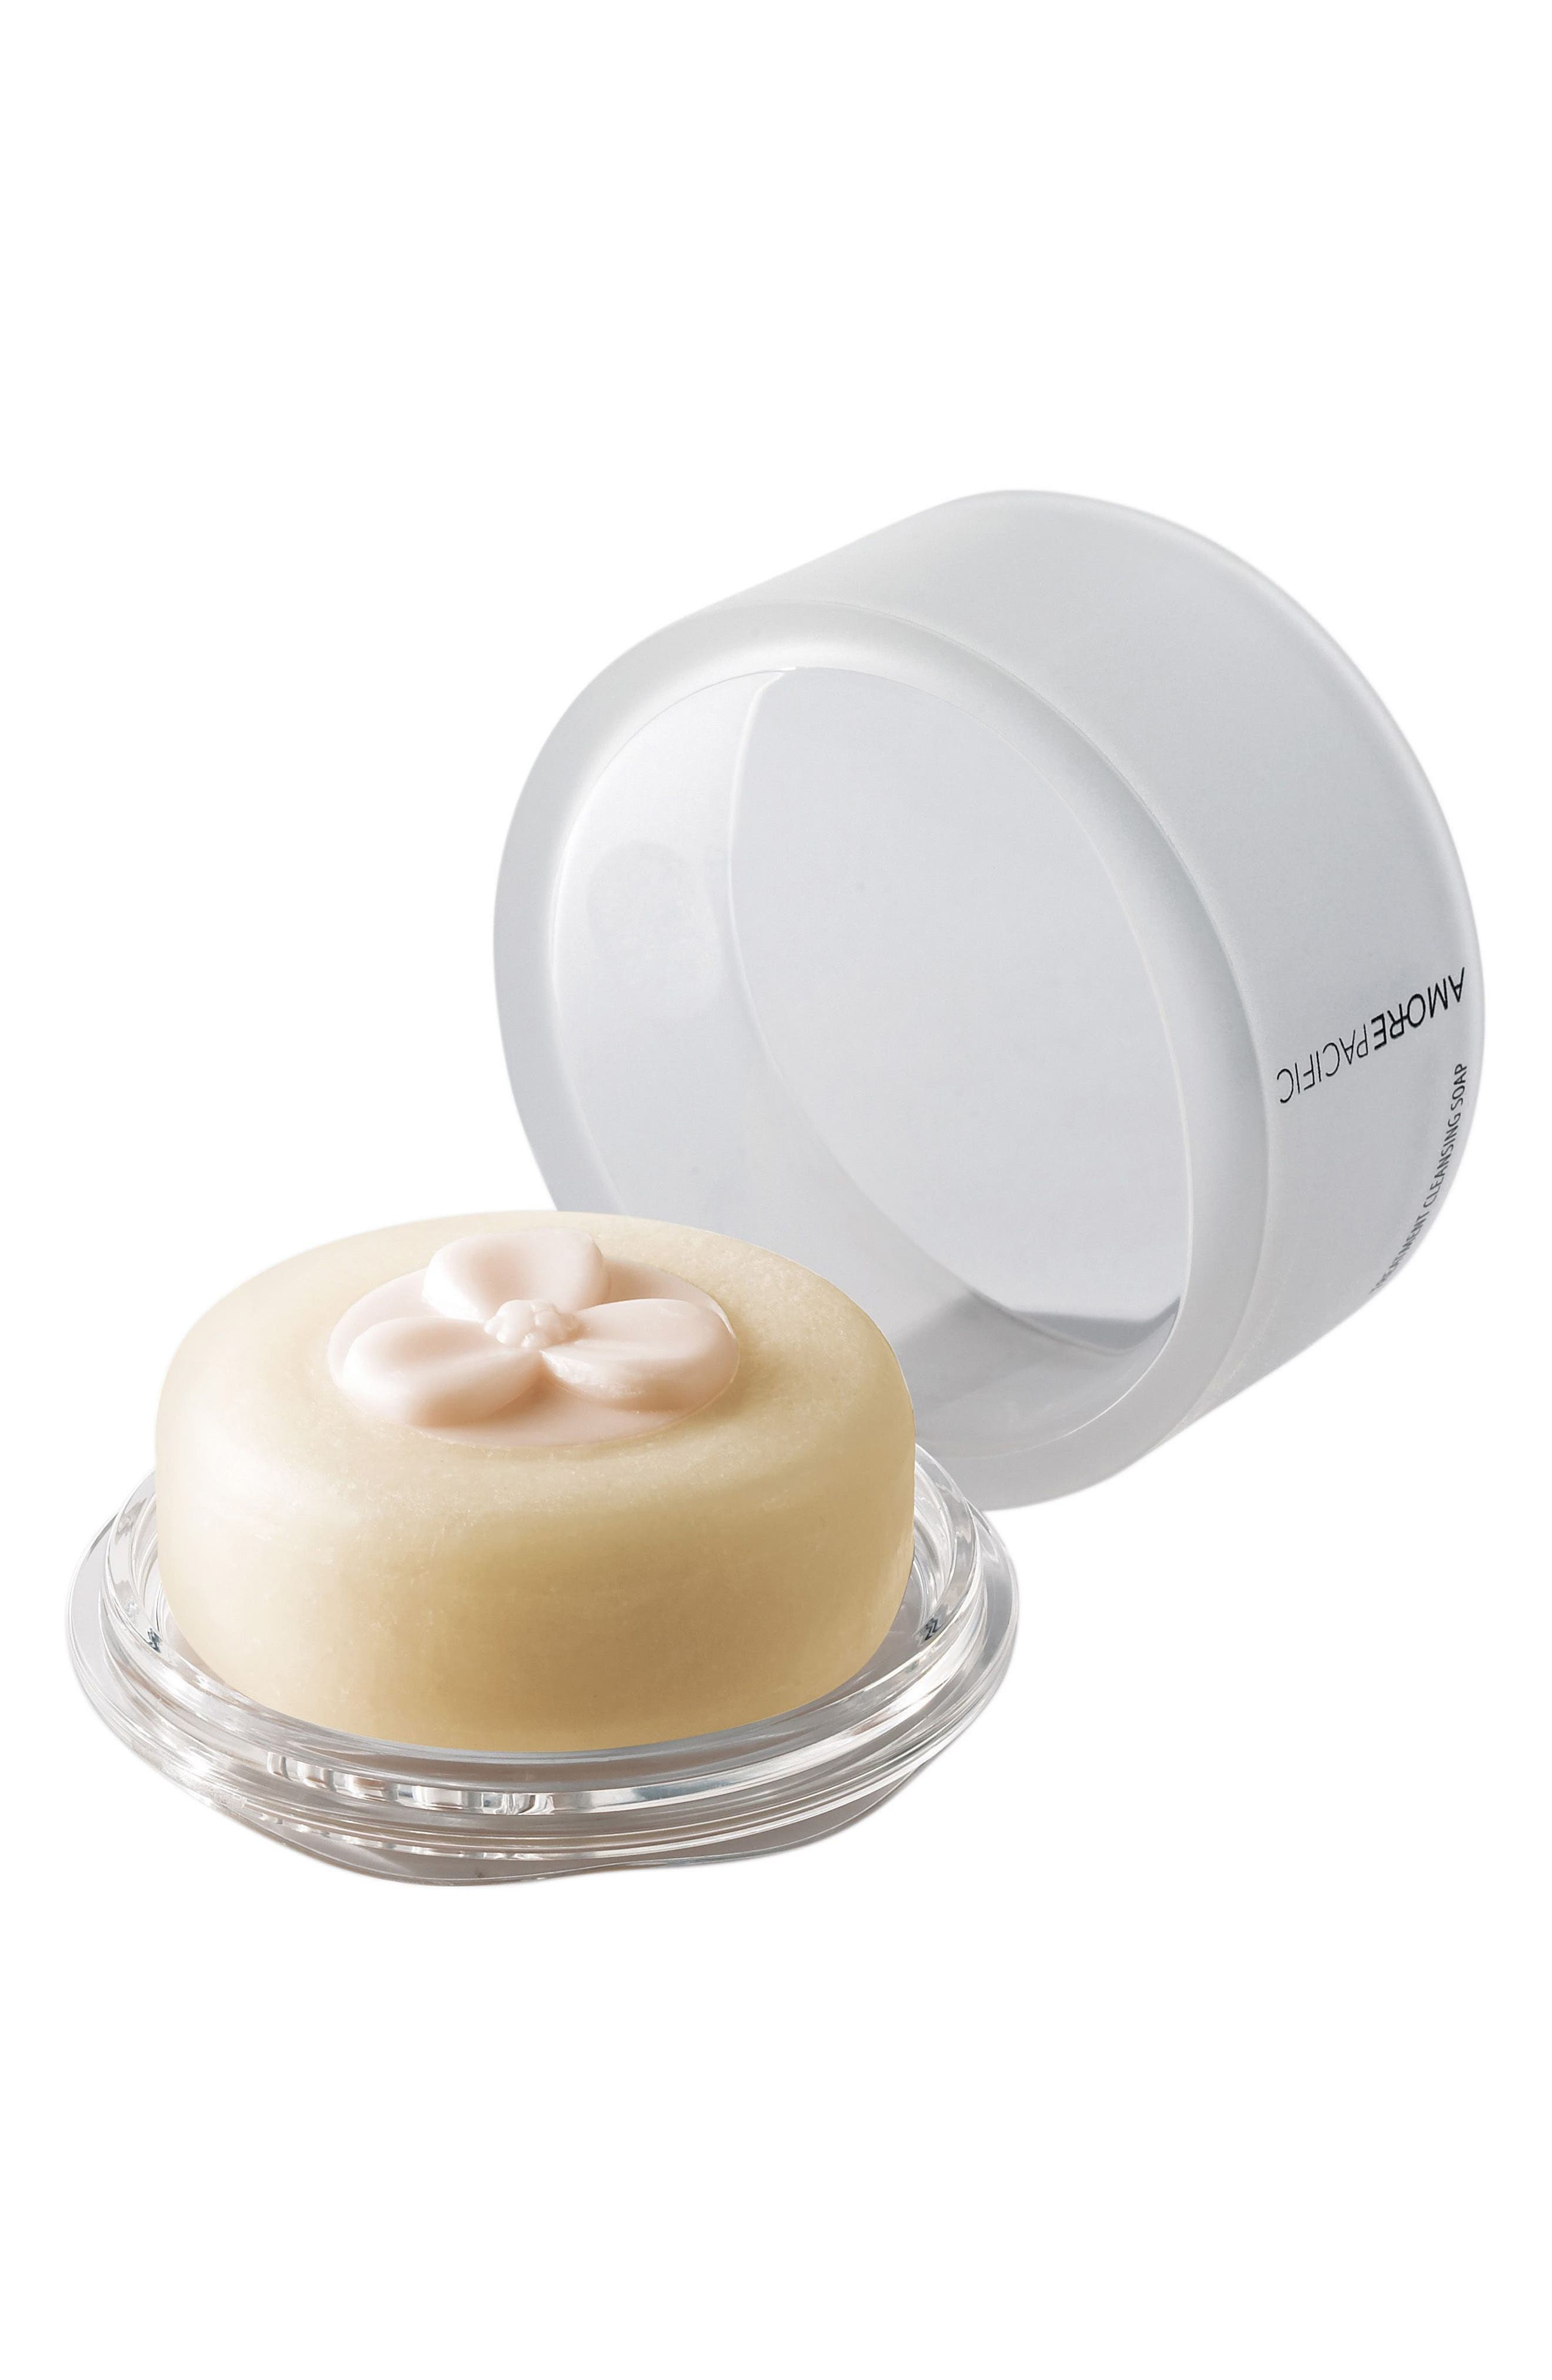 Main Image - AMOREPACIFIC 'Treatment' Cleansing Soap